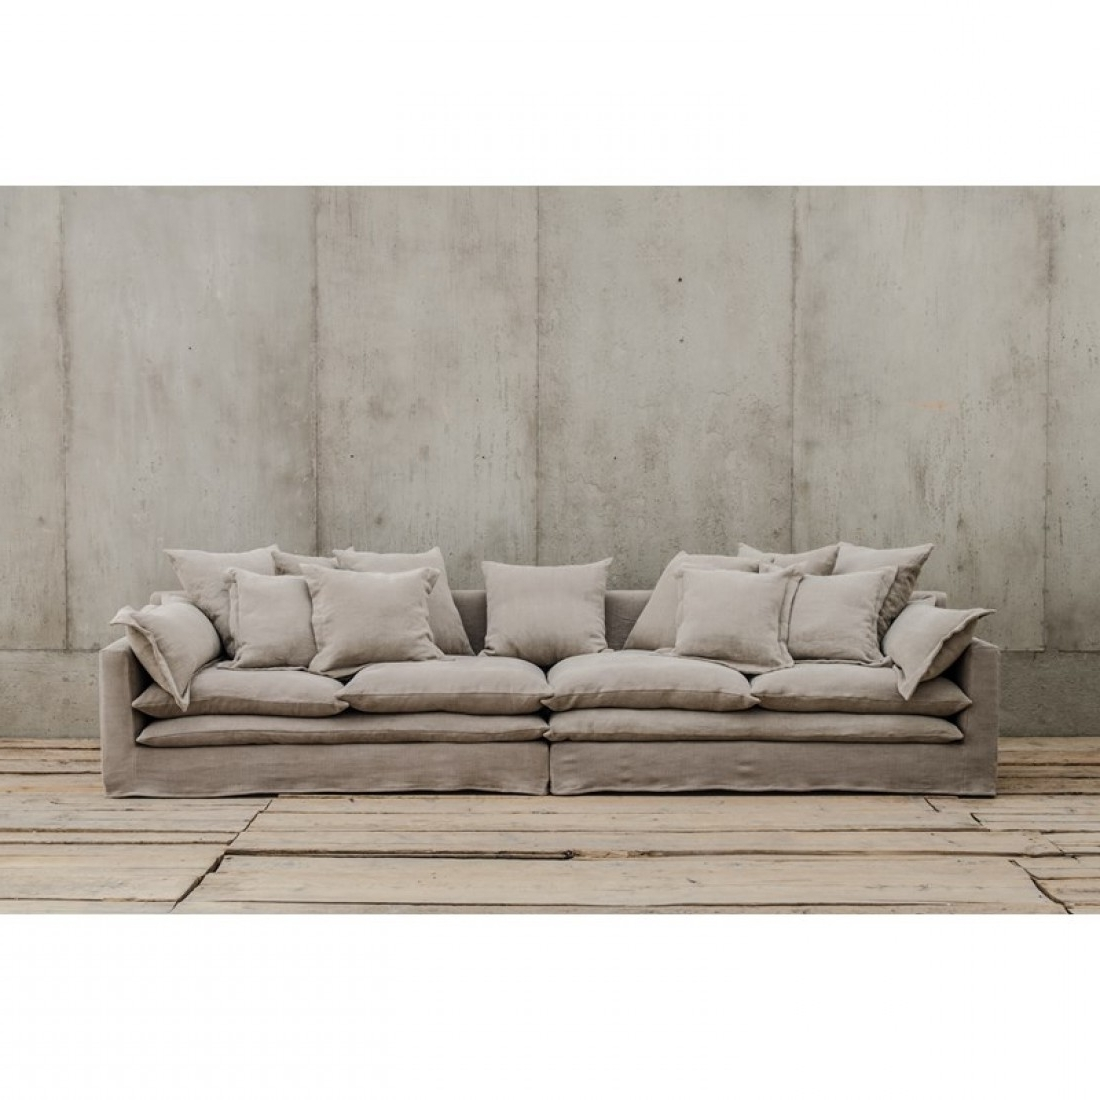 4780 Fourhands Cousin Oswald S Sofa Soft Sand Fh Cda036 Bi0000 In Well Known Sofas